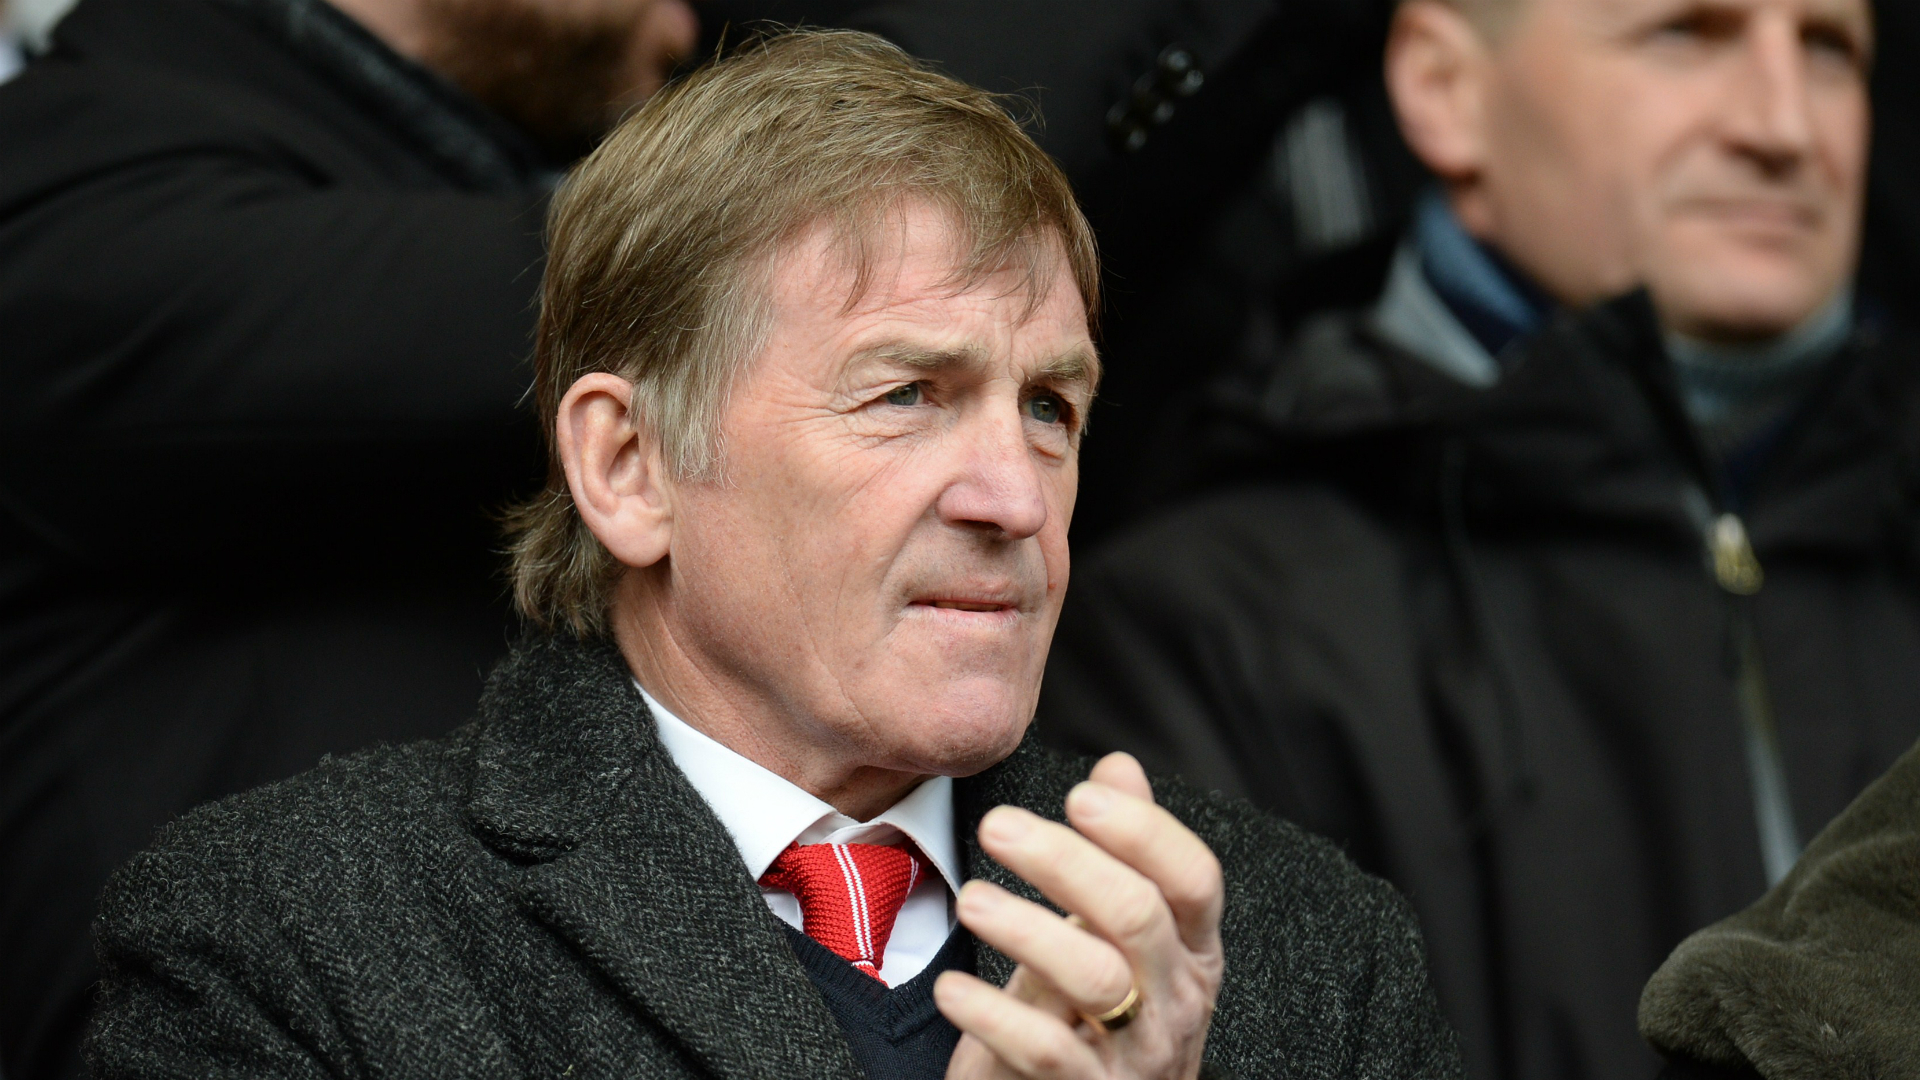 Liverpool legend Sir Kenny Dalglish in hospital with Covid-19 coronavirus